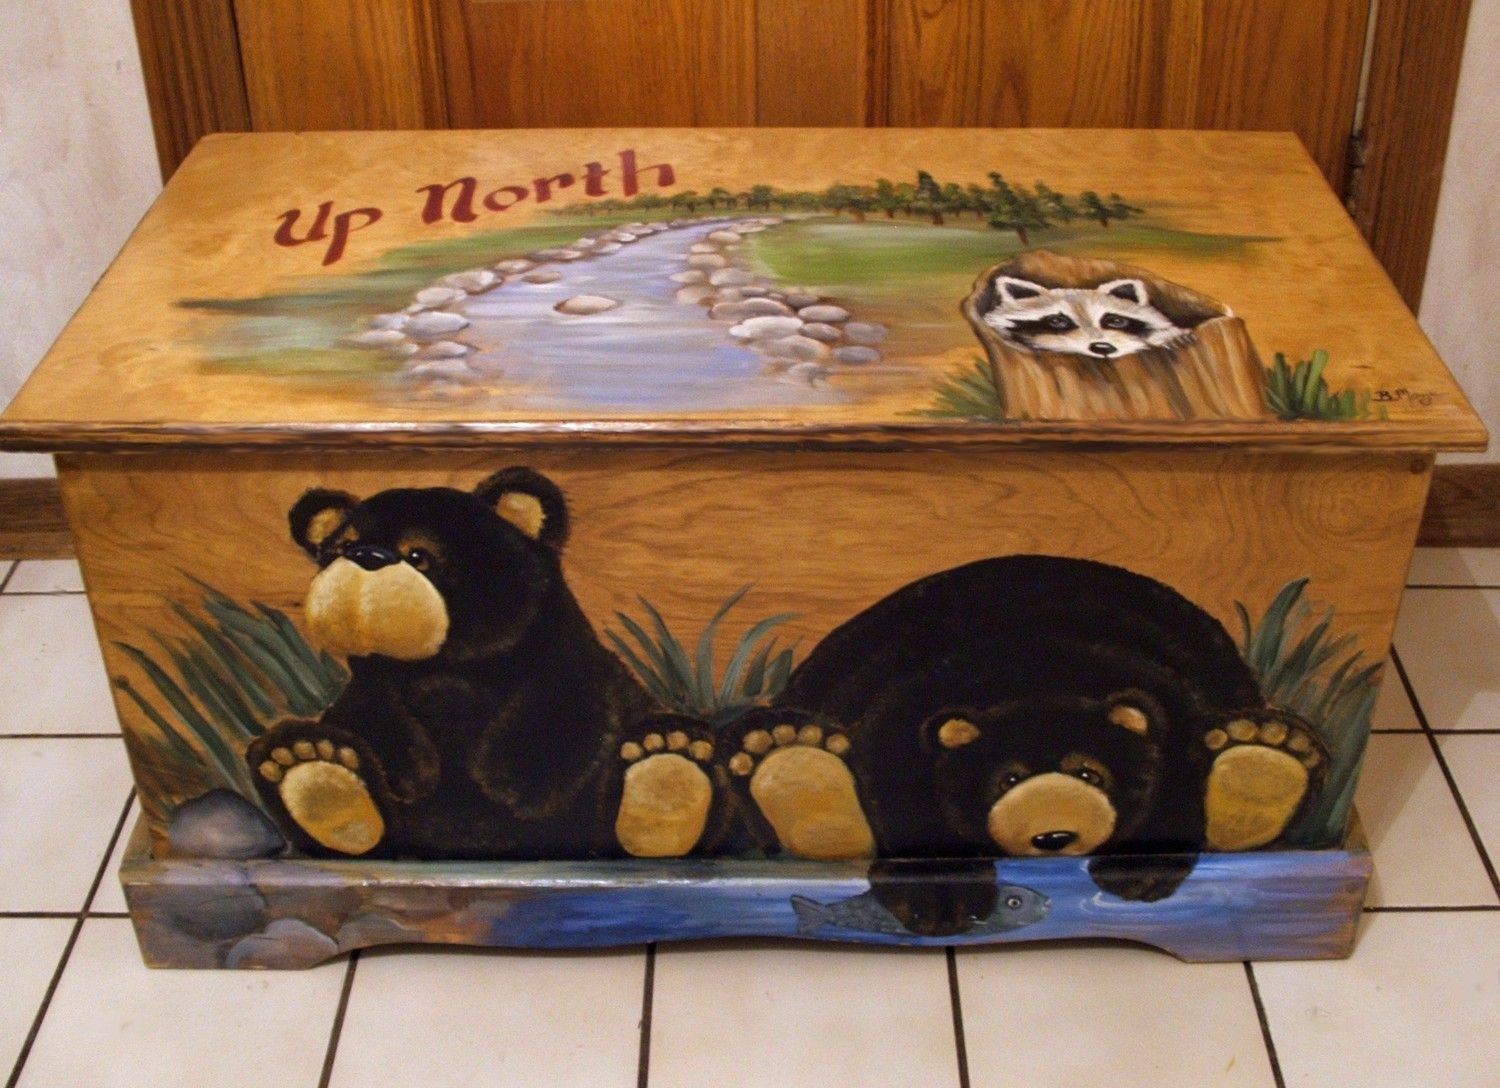 up north black bear toy box, kids furniture , wooden chest